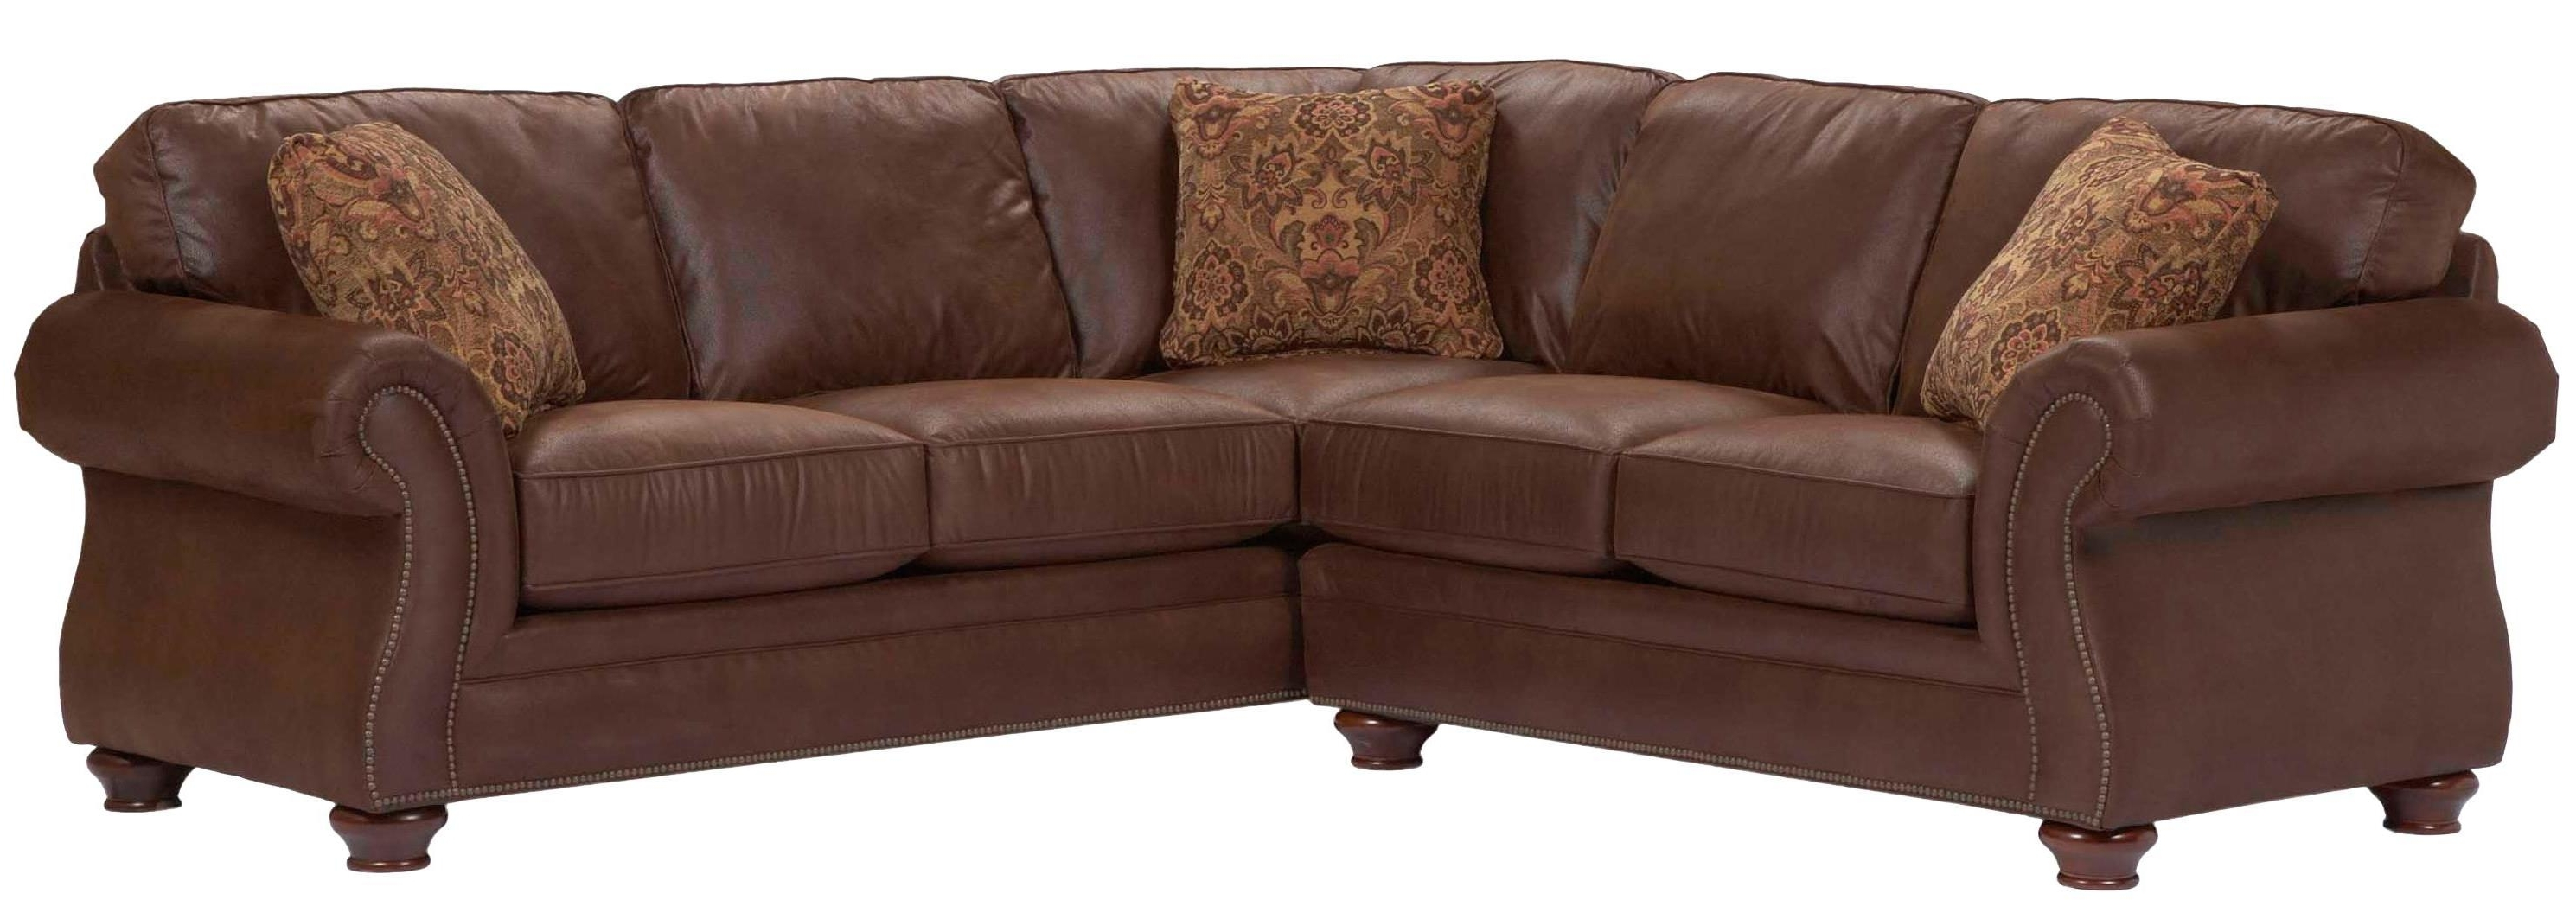 Broyhill Sectional Sofas Pertaining To Widely Used Broyhill Furniture Laramie 2 Piece Corner Sectional Sofa (View 11 of 15)